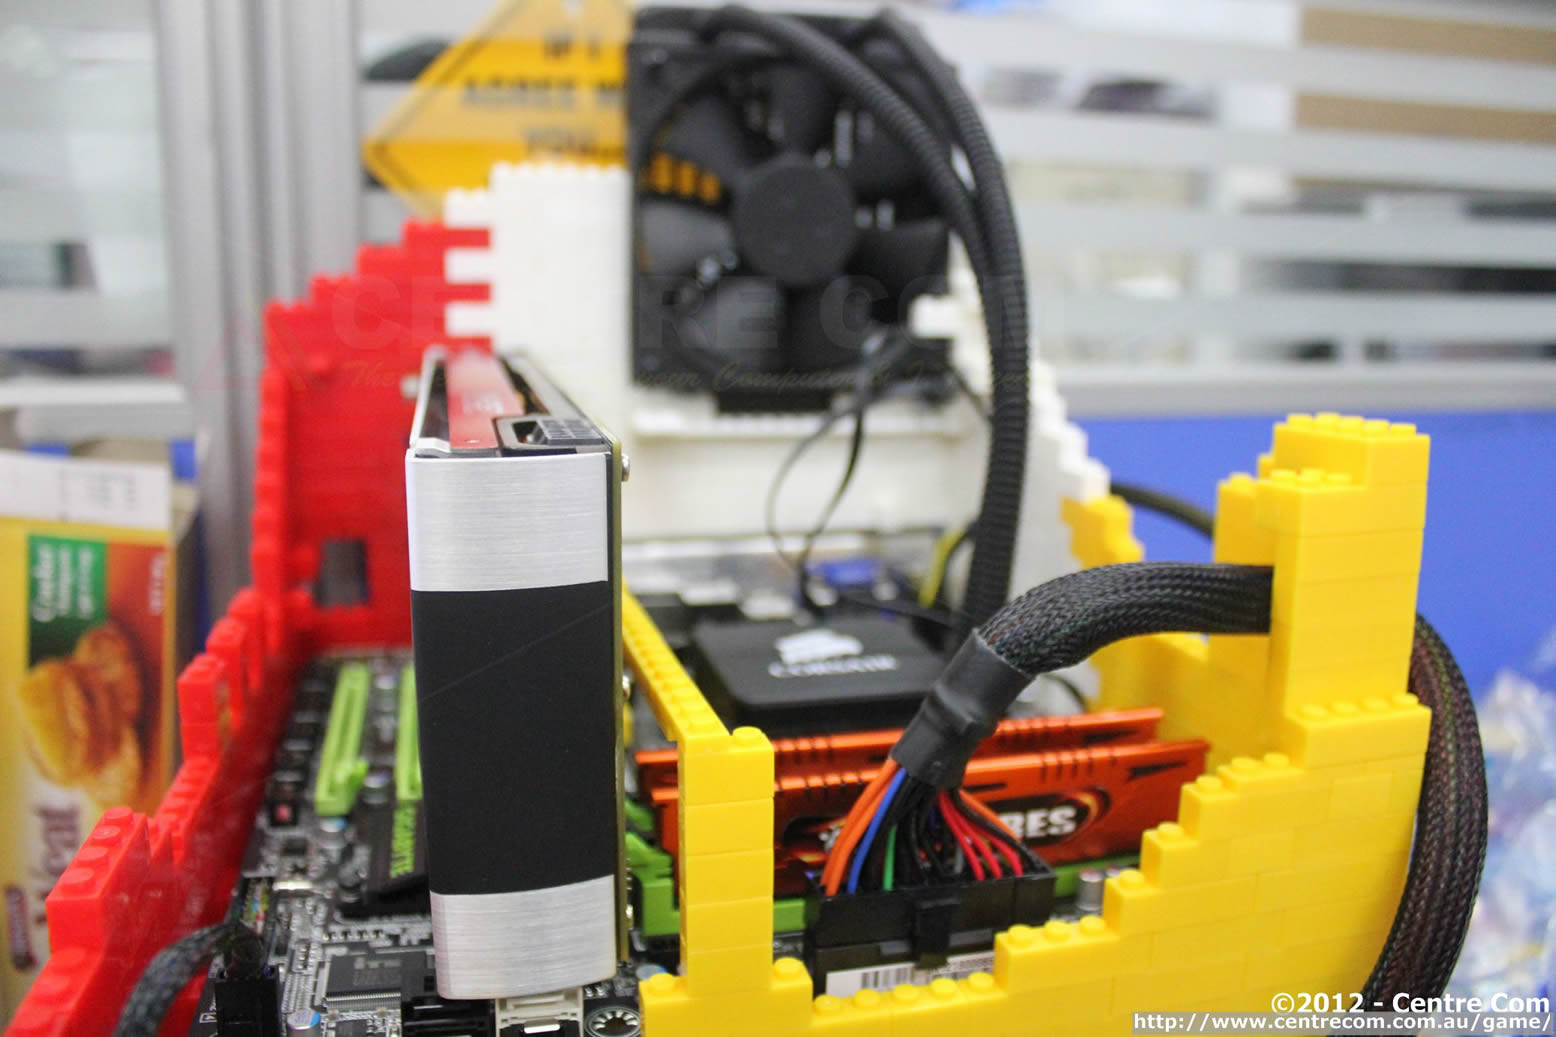 Lego Radiator centre com: centre com builds a lego pc!